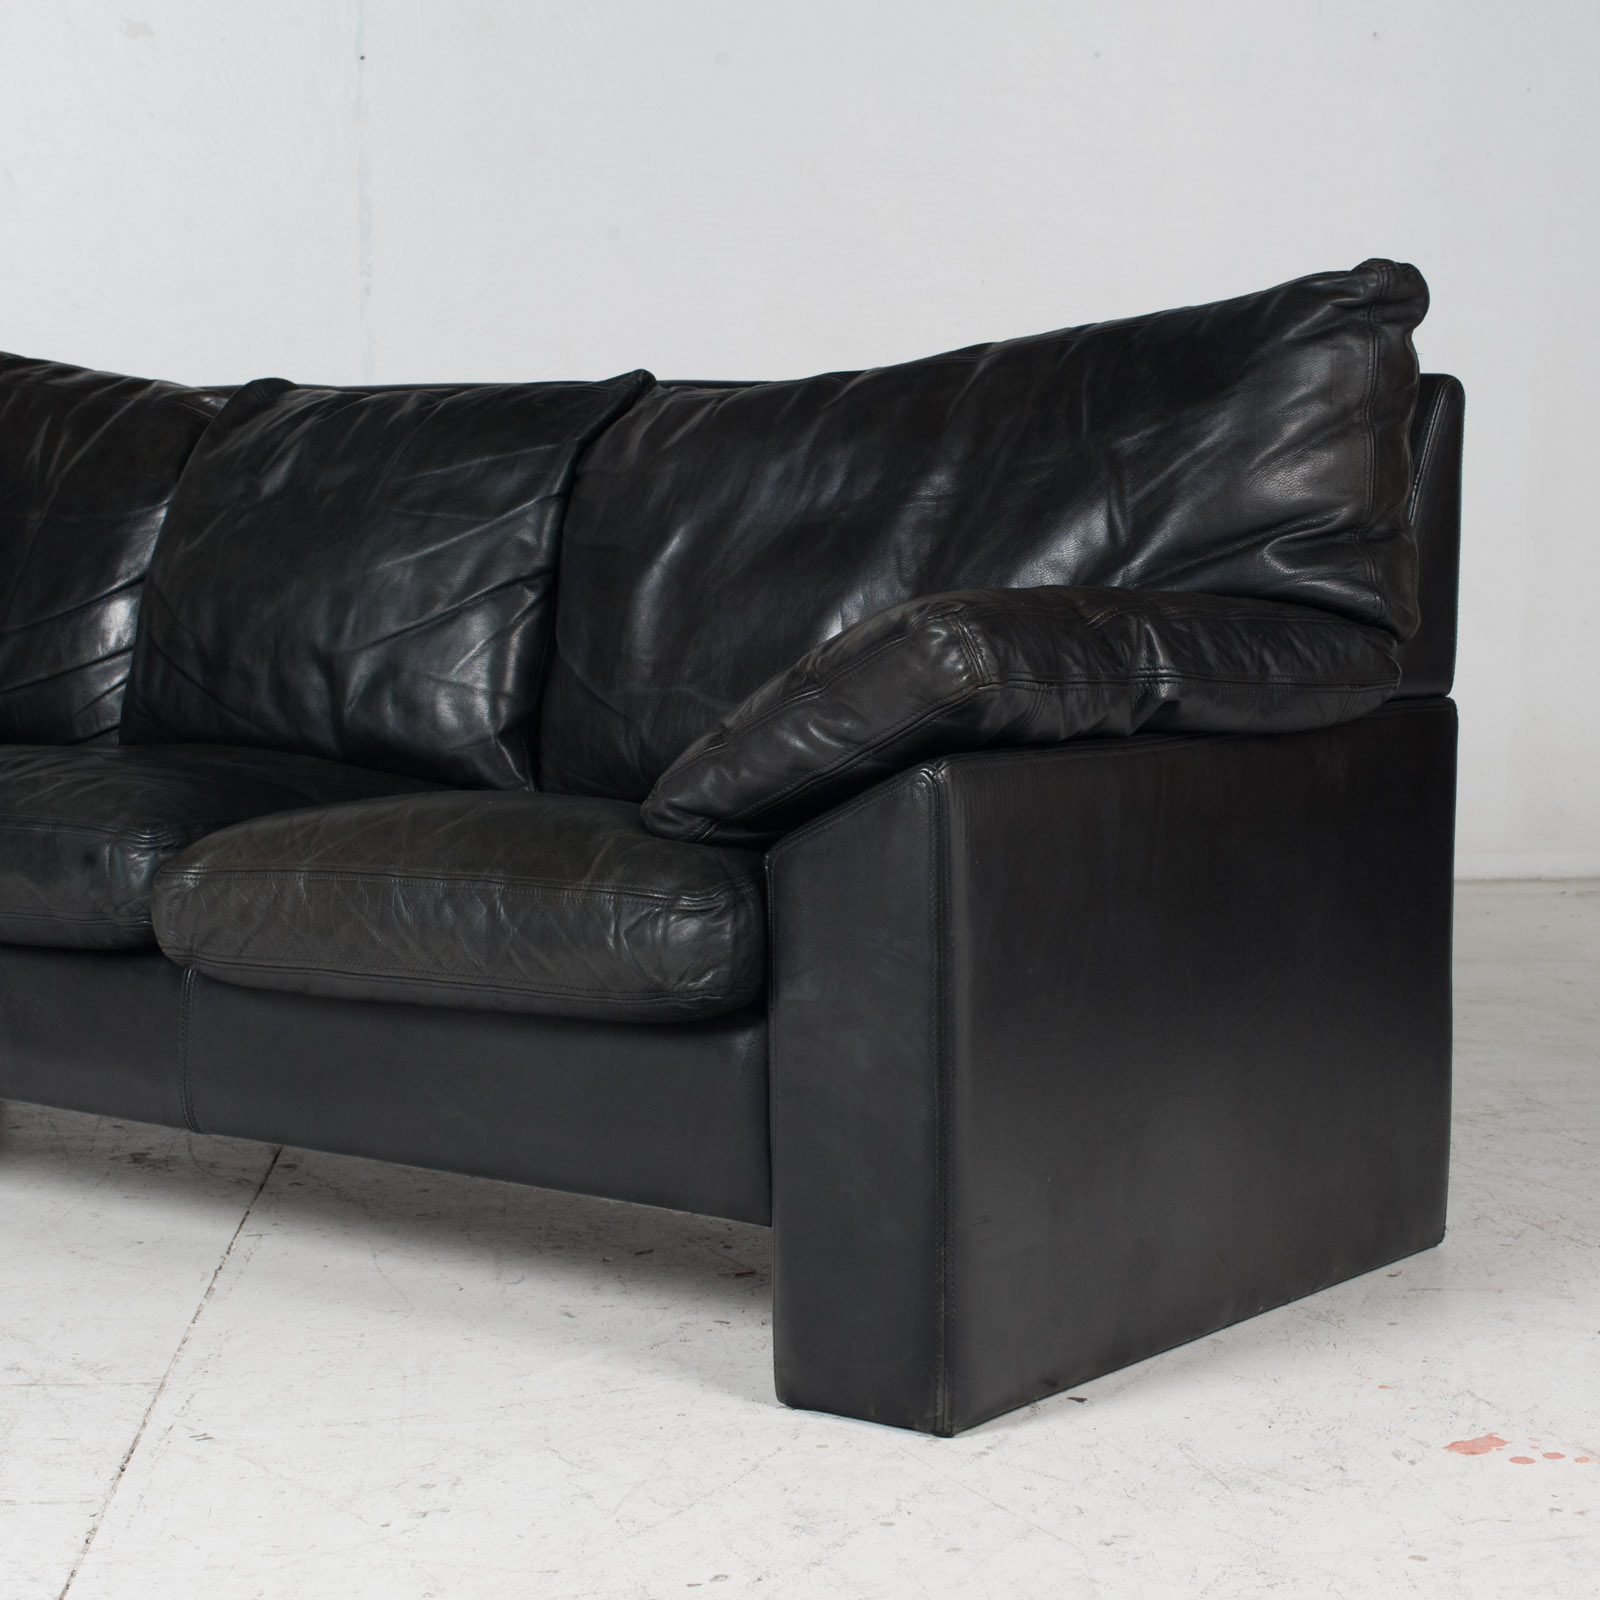 3 Seat Sofa By Stouby In Black Leather, 1960s, Denmark 7